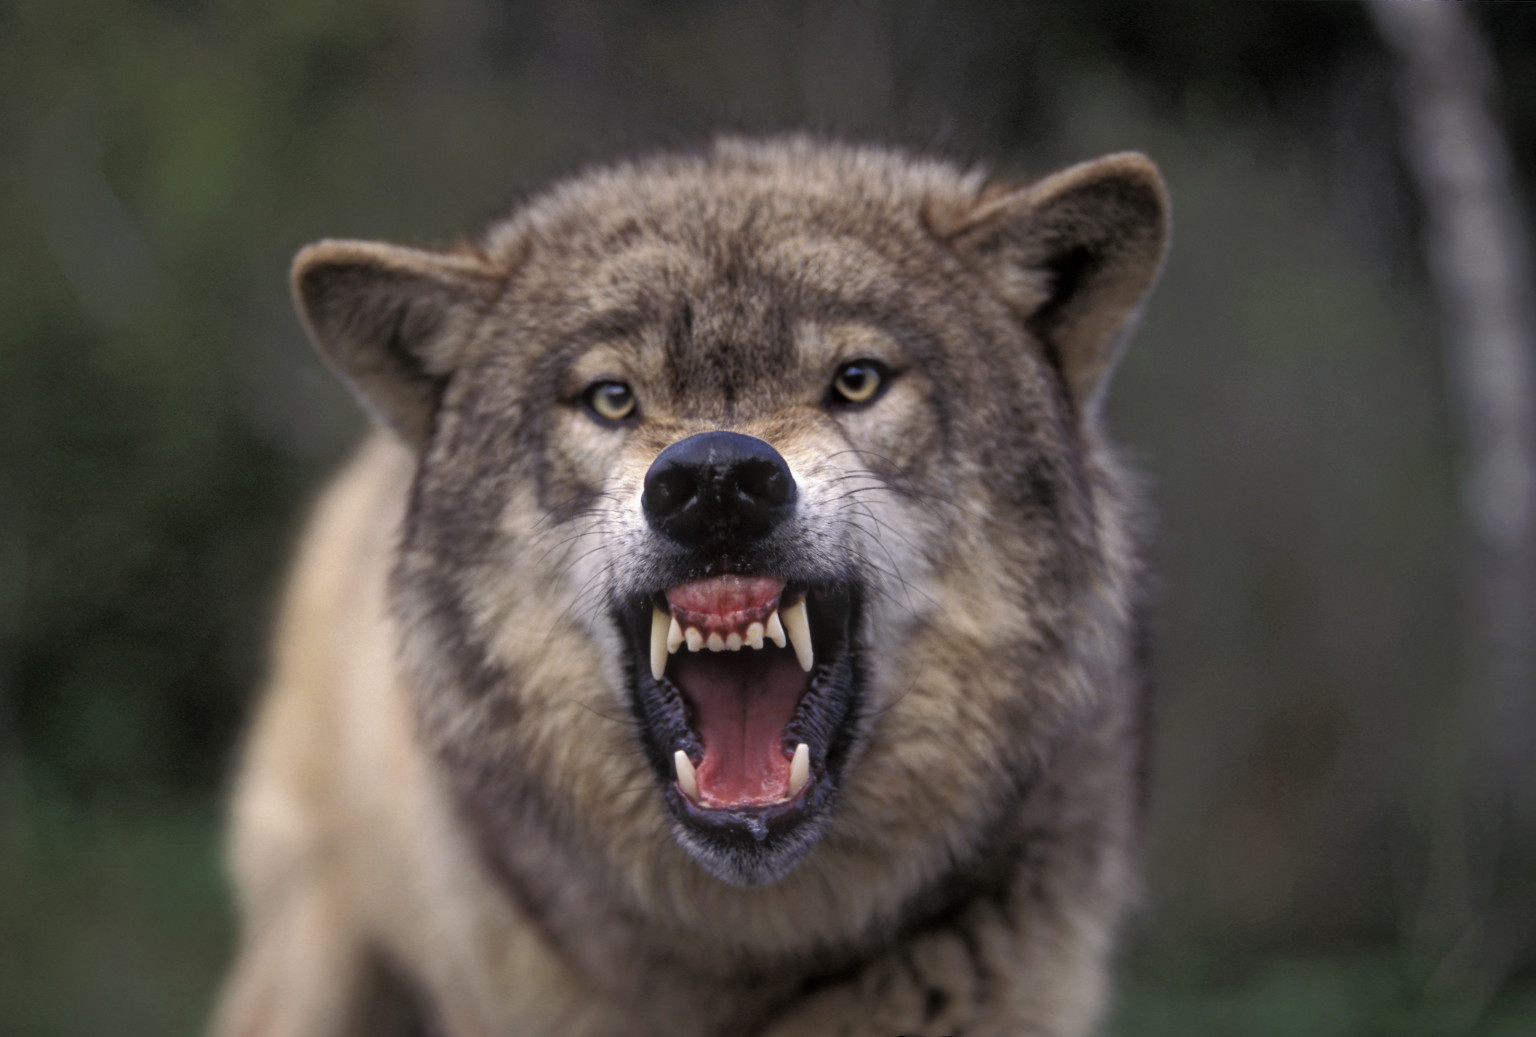 wolf growling side angry snarling head wolves animal grey animals howl down touch kid eyes imgkid huffpost does